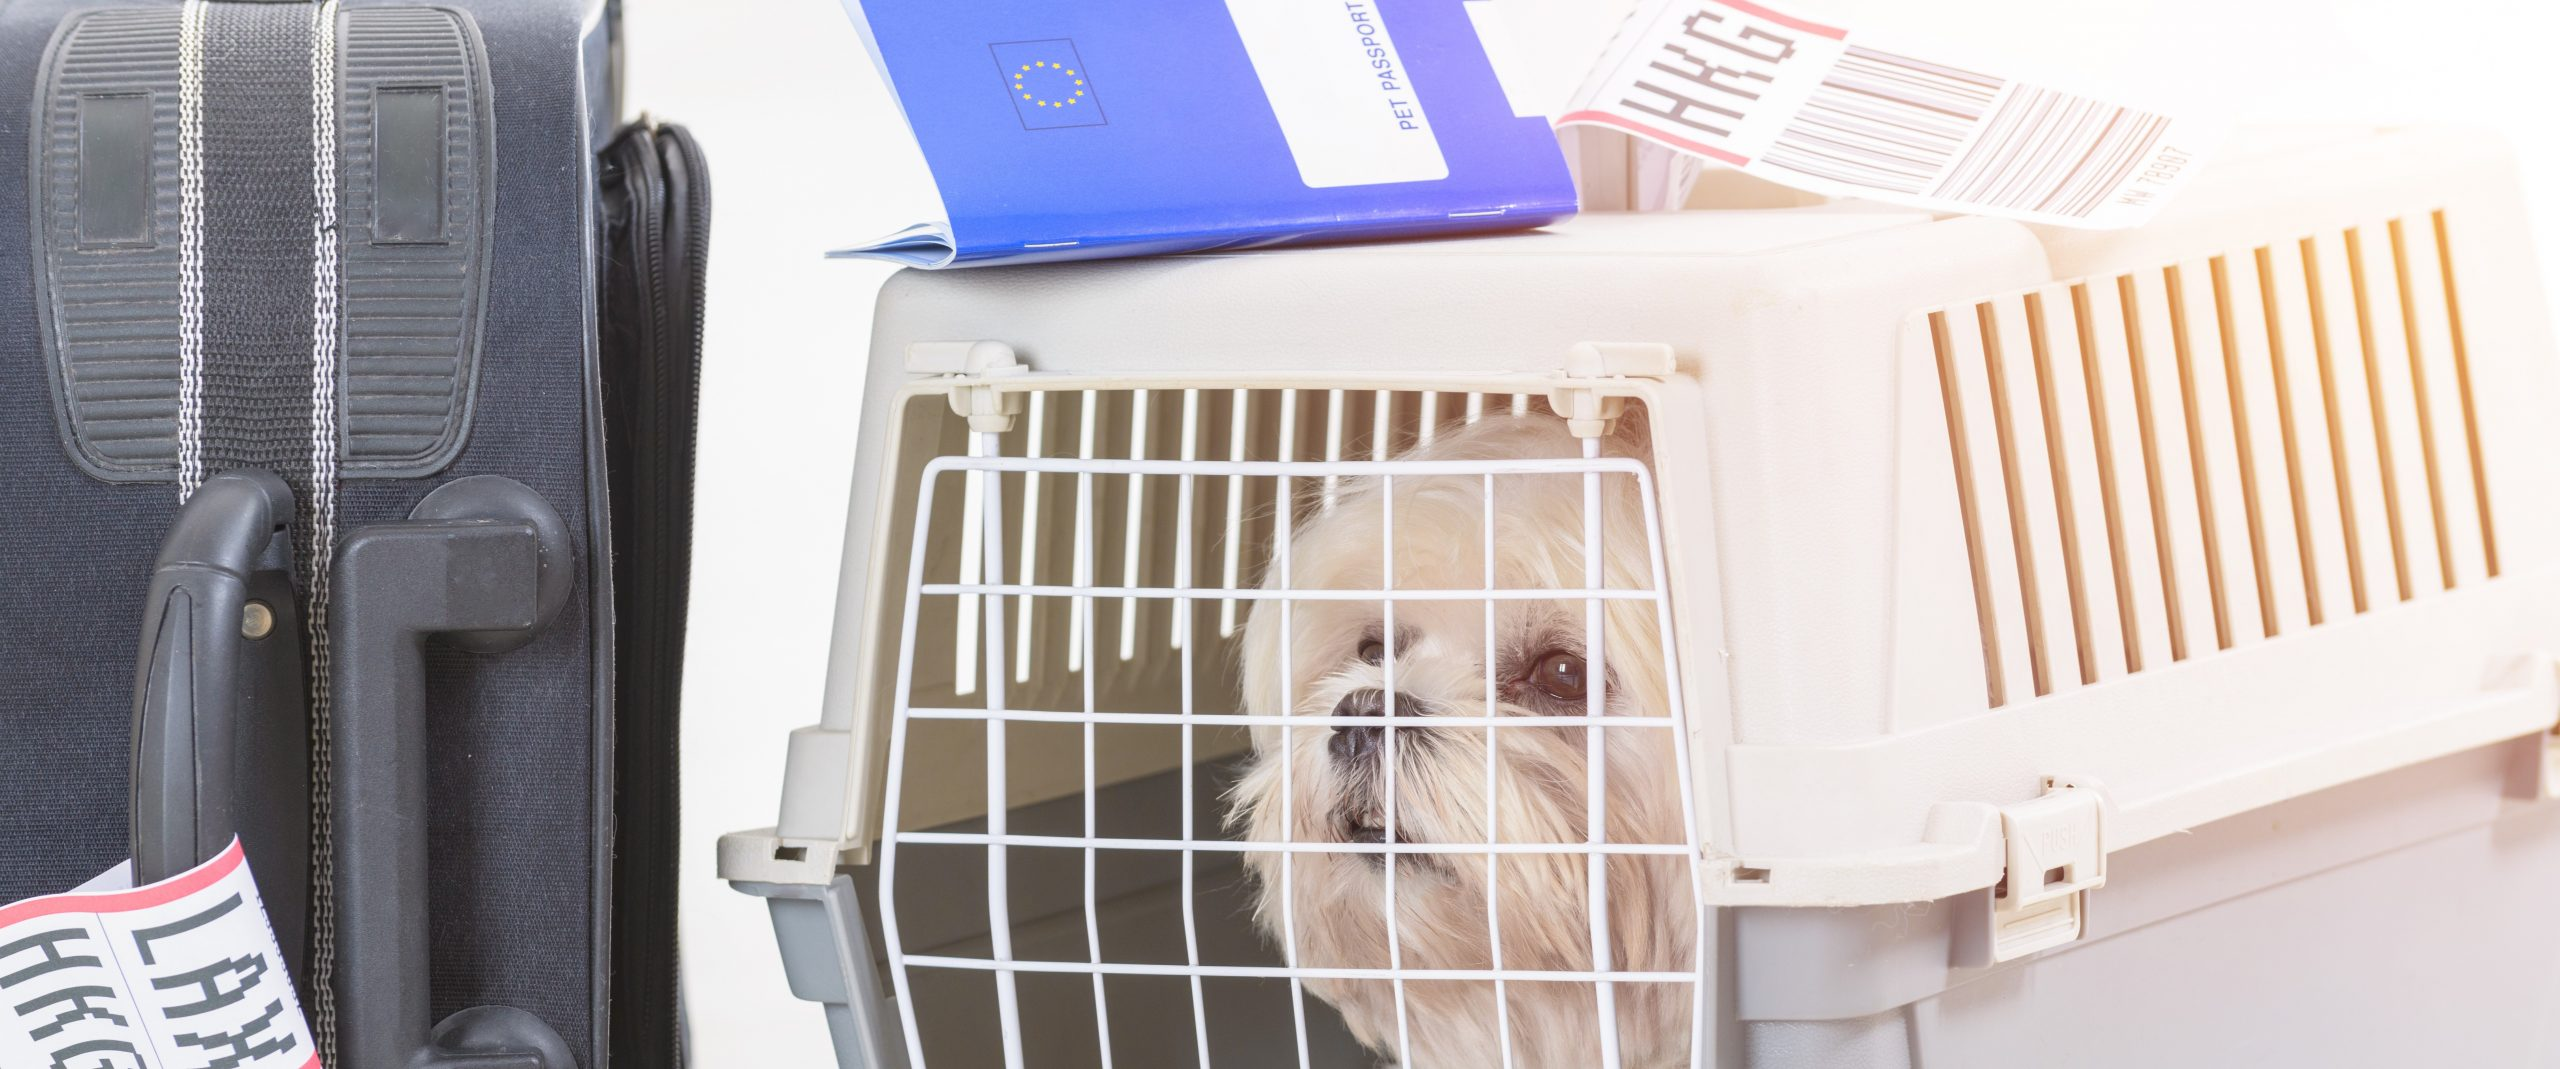 Things to Know Before Travelling with Pets: Part 1